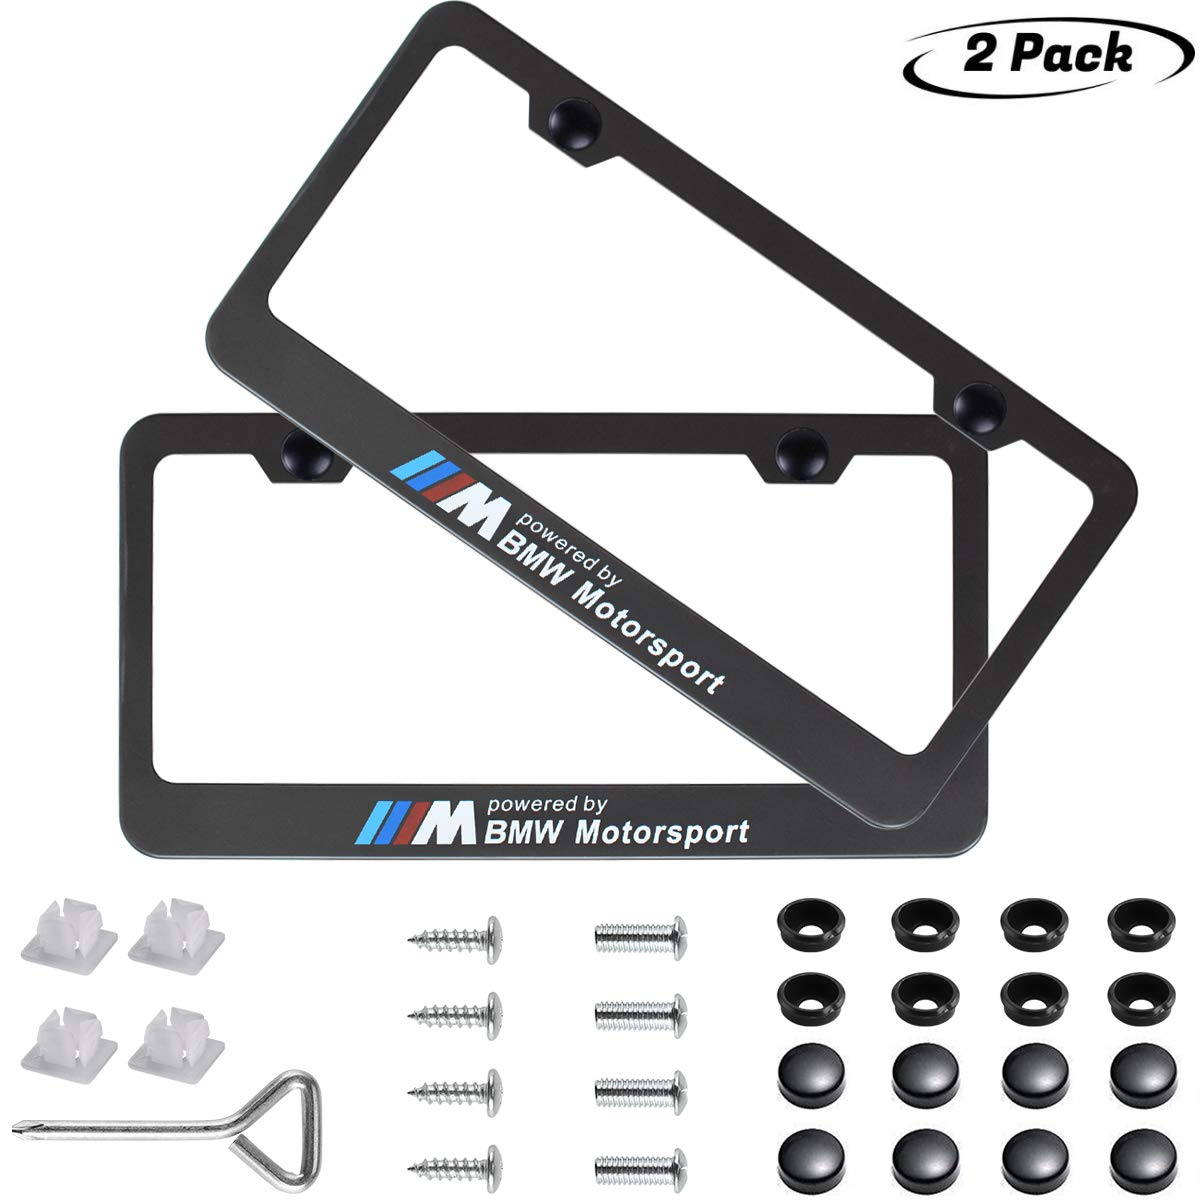 Amazon com 2pcs m sports motorsport logo license plate frame frameapplicable to us standard car license frame for bwm motorsport automotive